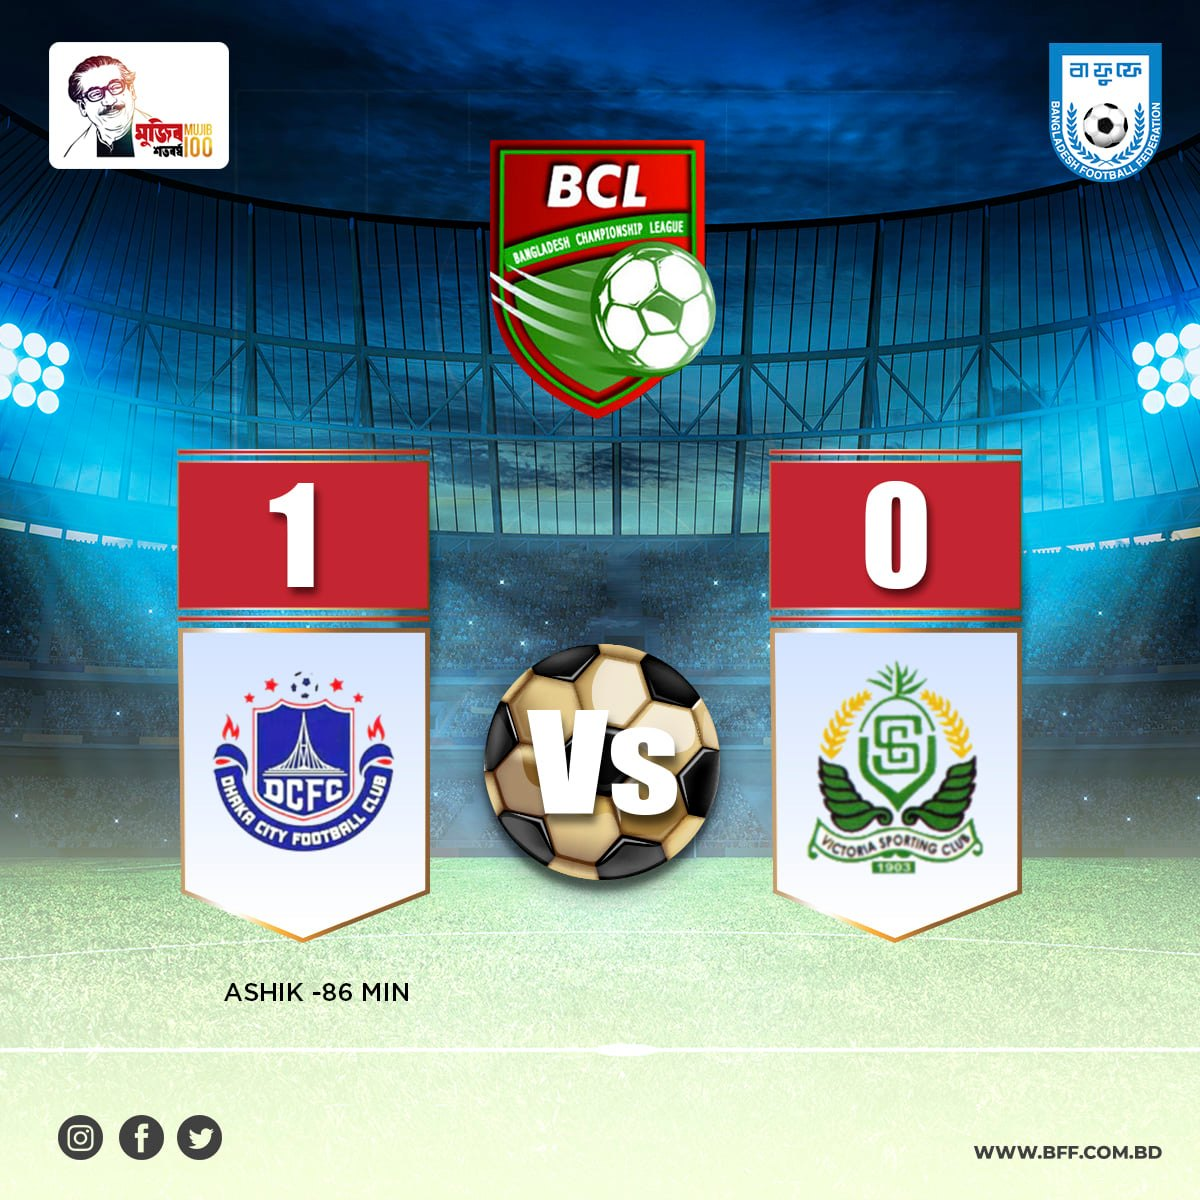 Dhaka City Football Club Ltd. defeated Victoria Sporting Club